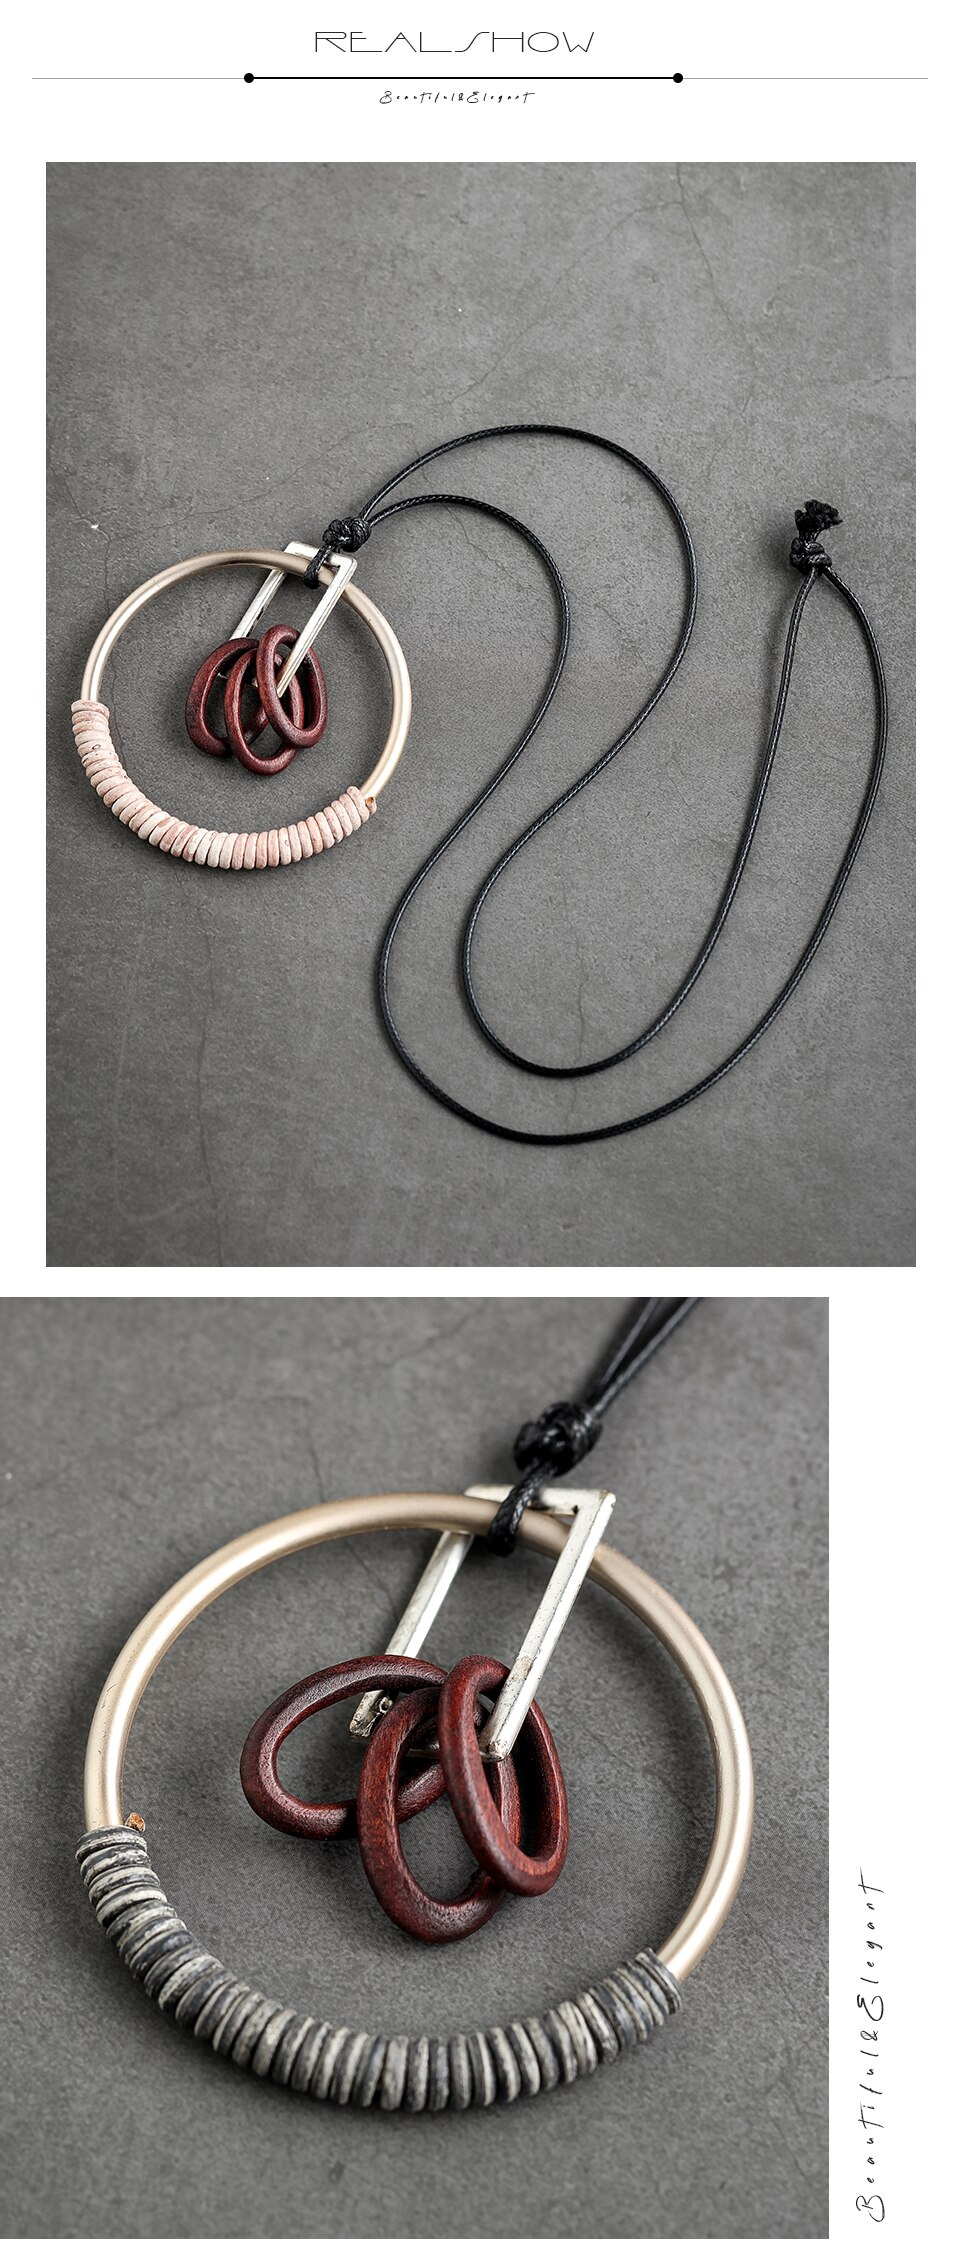 Vintage Jewelry for Women Long Necklace Wood beads Pendants necklaces & pendants Jewellery Suspension Gothic Rope Chains Chokers